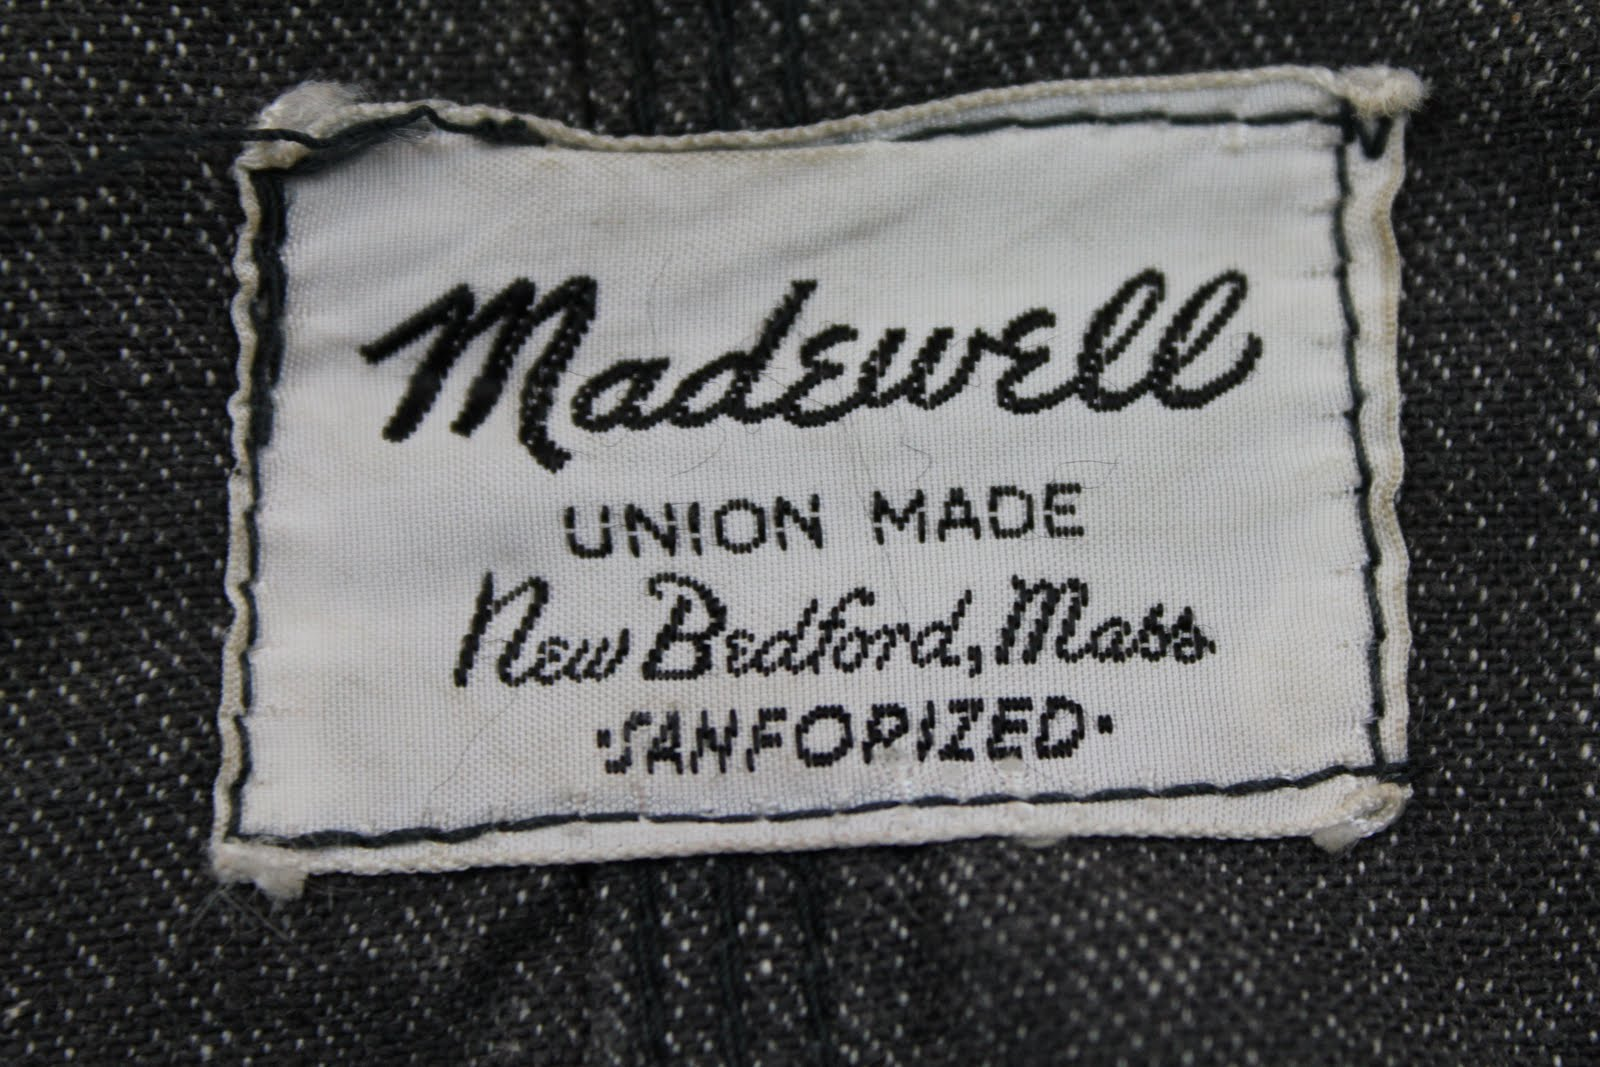 The Madewell brand celebrates the origins it doesn't actually have.